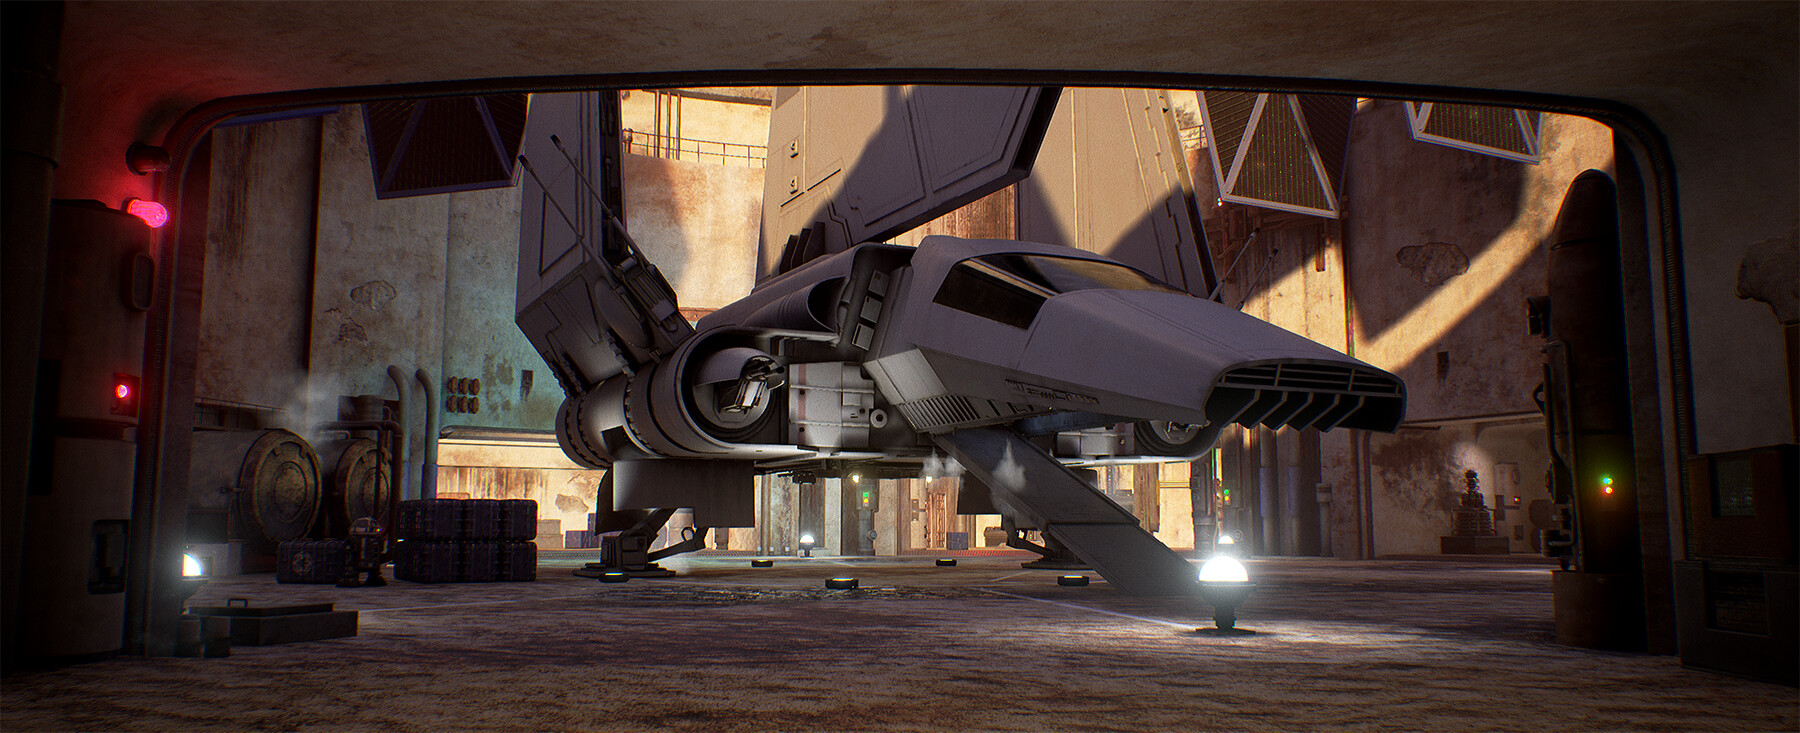 As seen on Kotaku: https://kotaku.com/fans-are-remaking-star-wars-dark-forces-in-unreal-engi-1833335006 